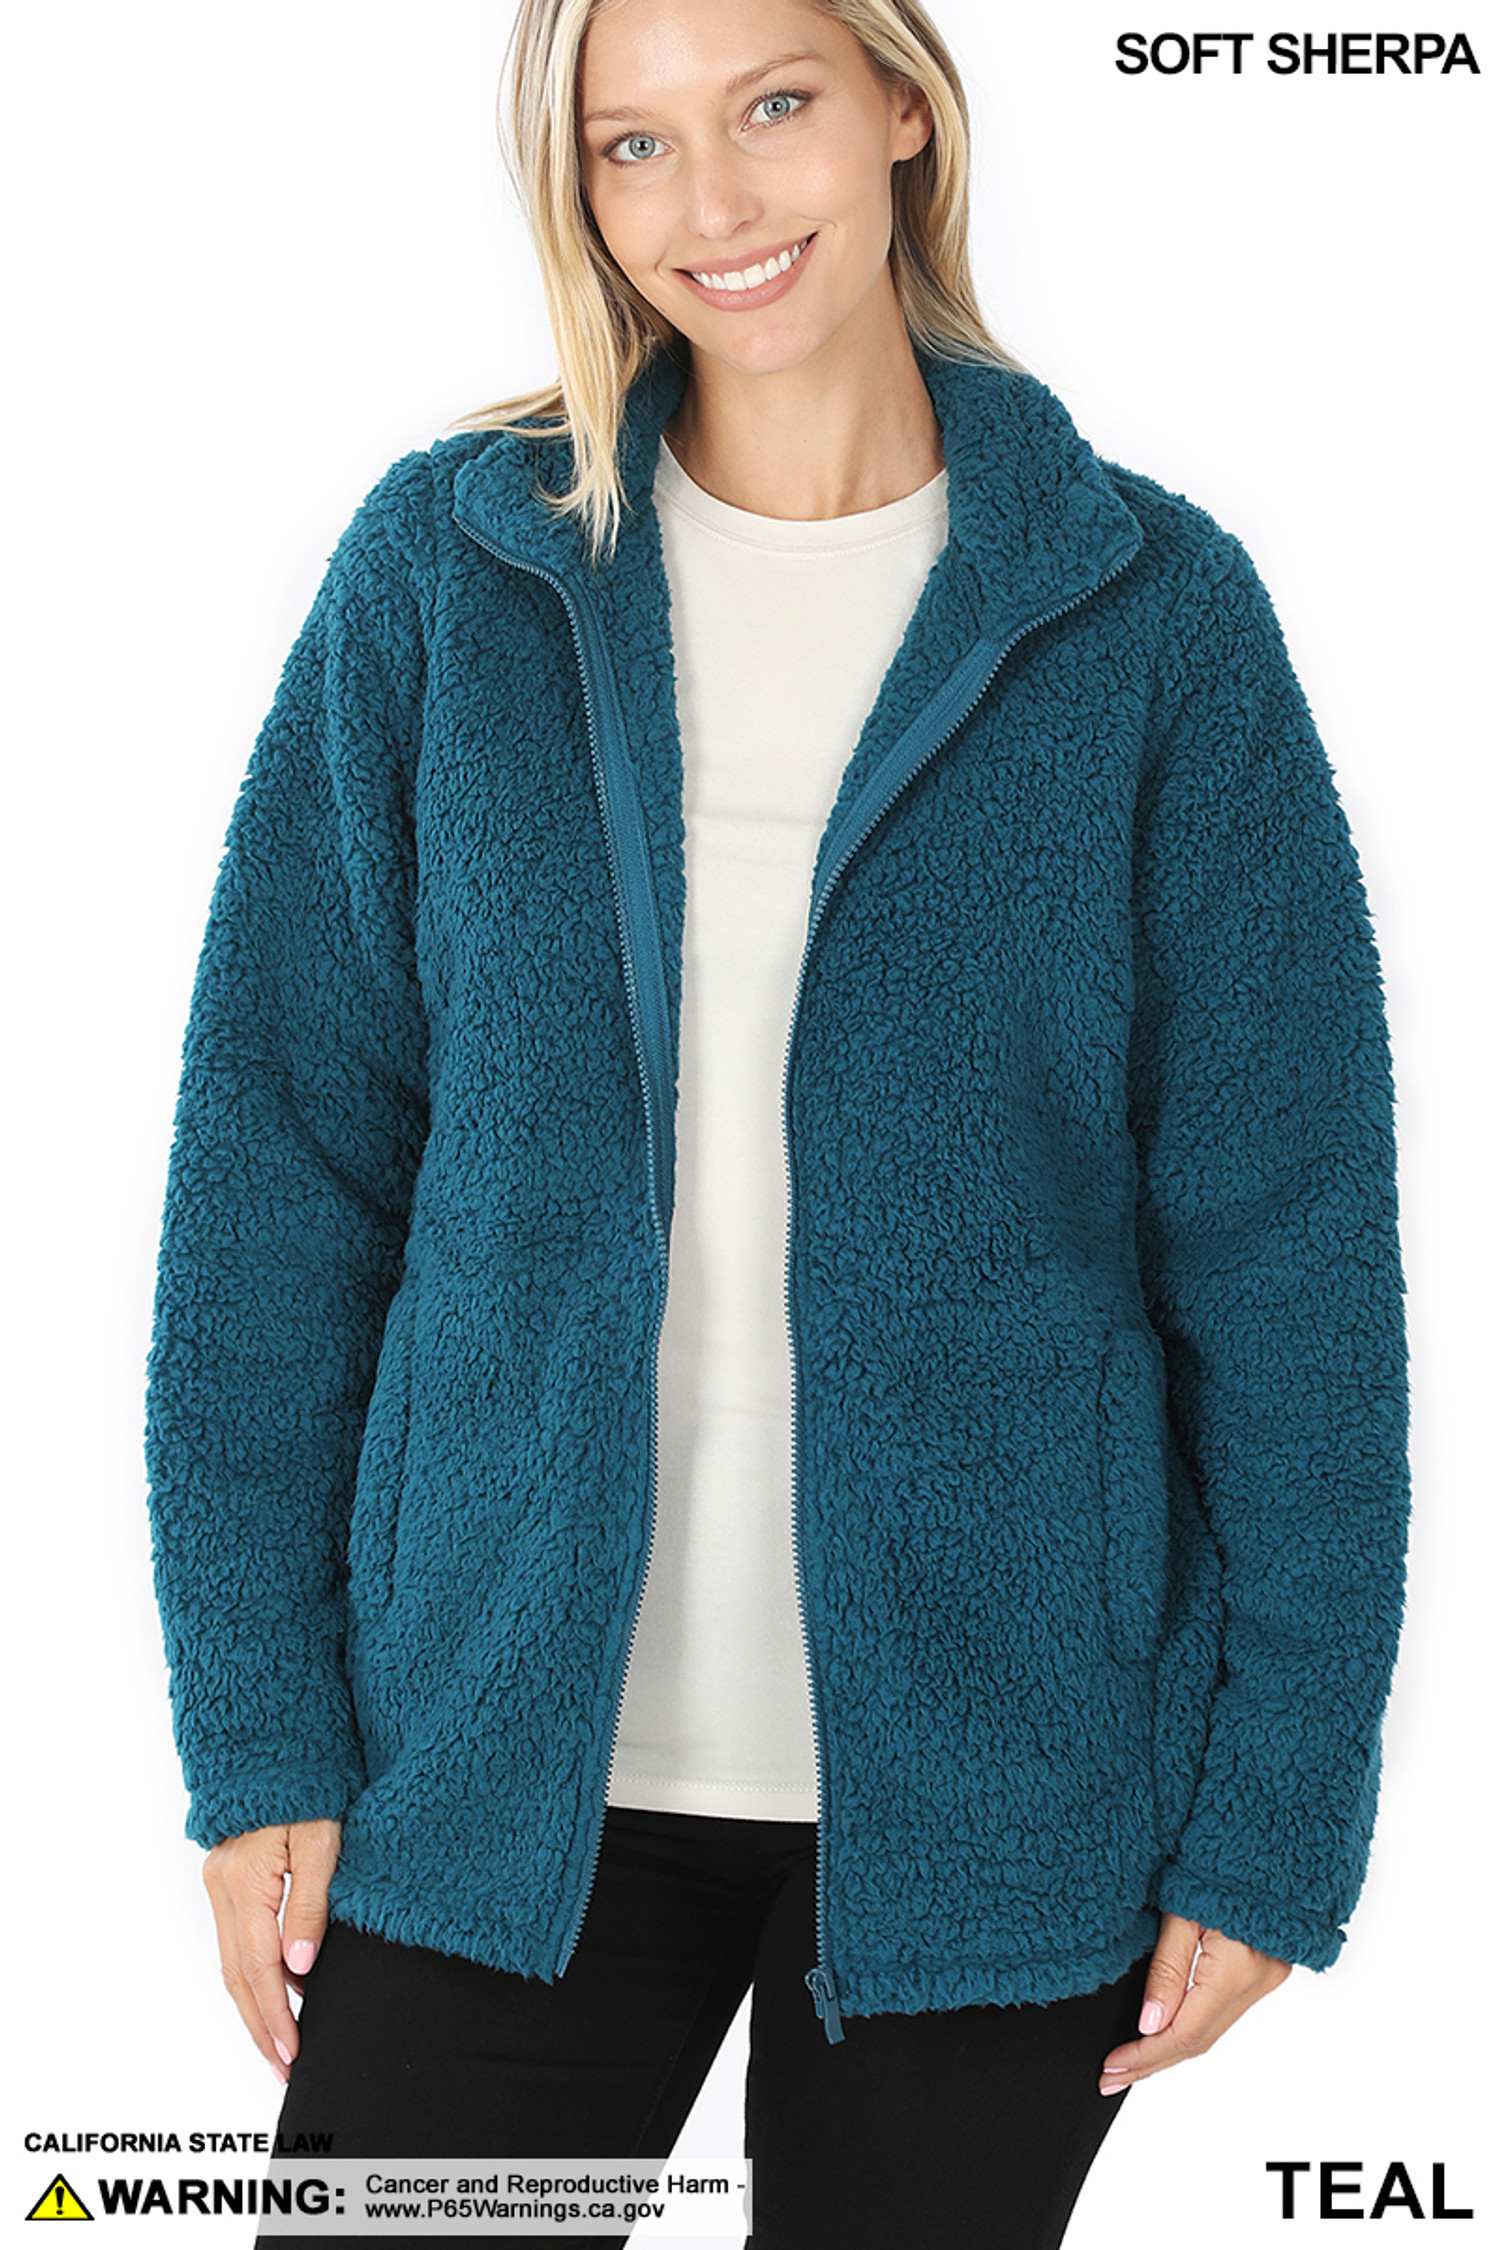 Front Unzipped image of Teal Sherpa Zip Up Jacket with Side Pockets